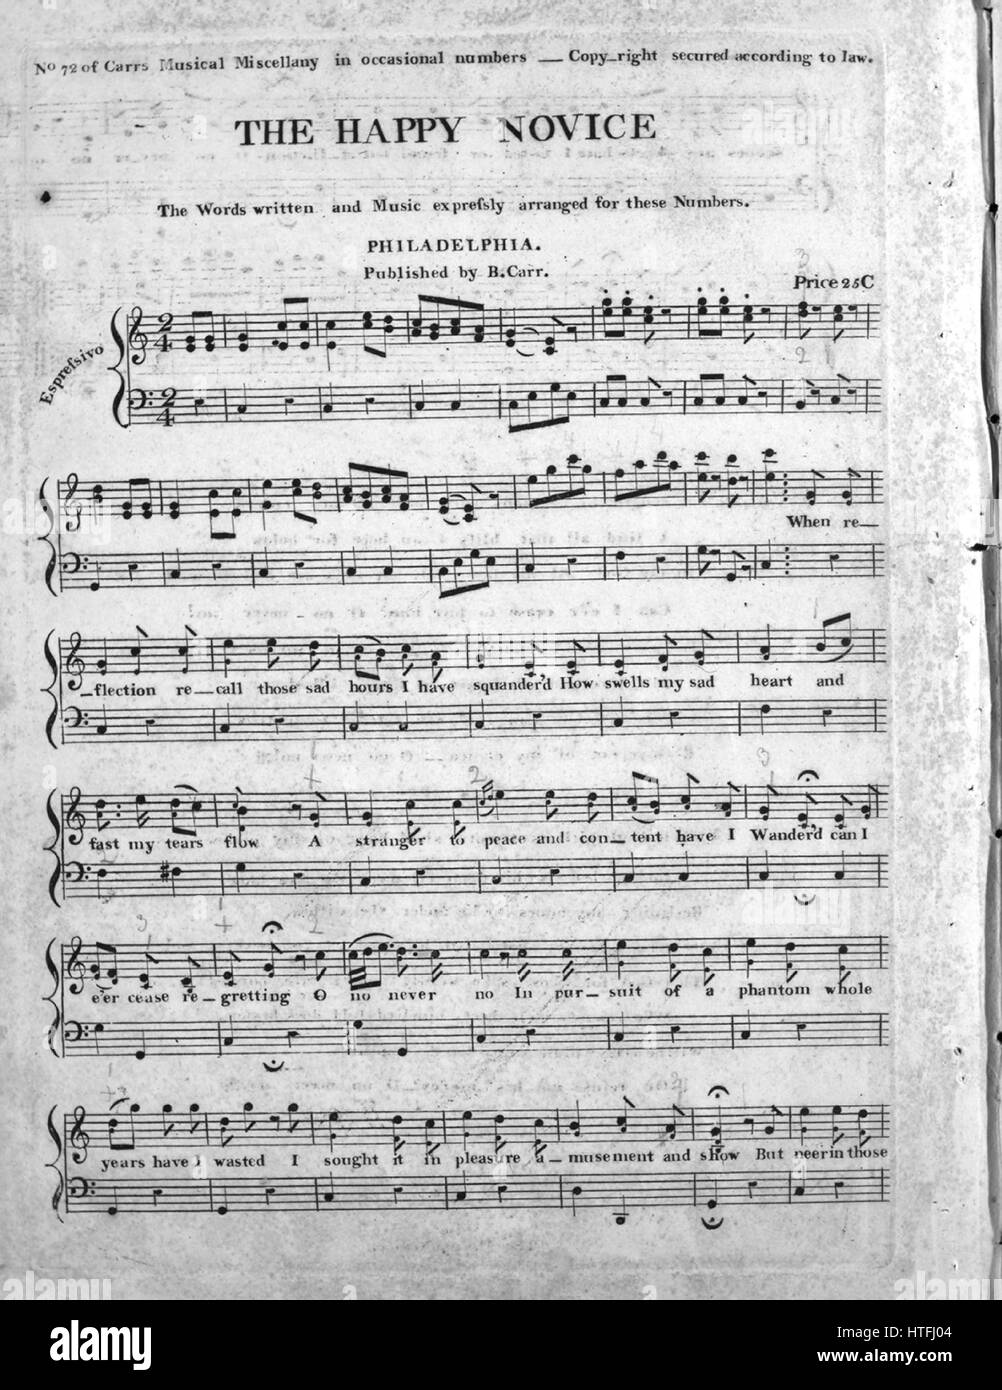 Sheet music cover image of the song 'The Happy Novice', with